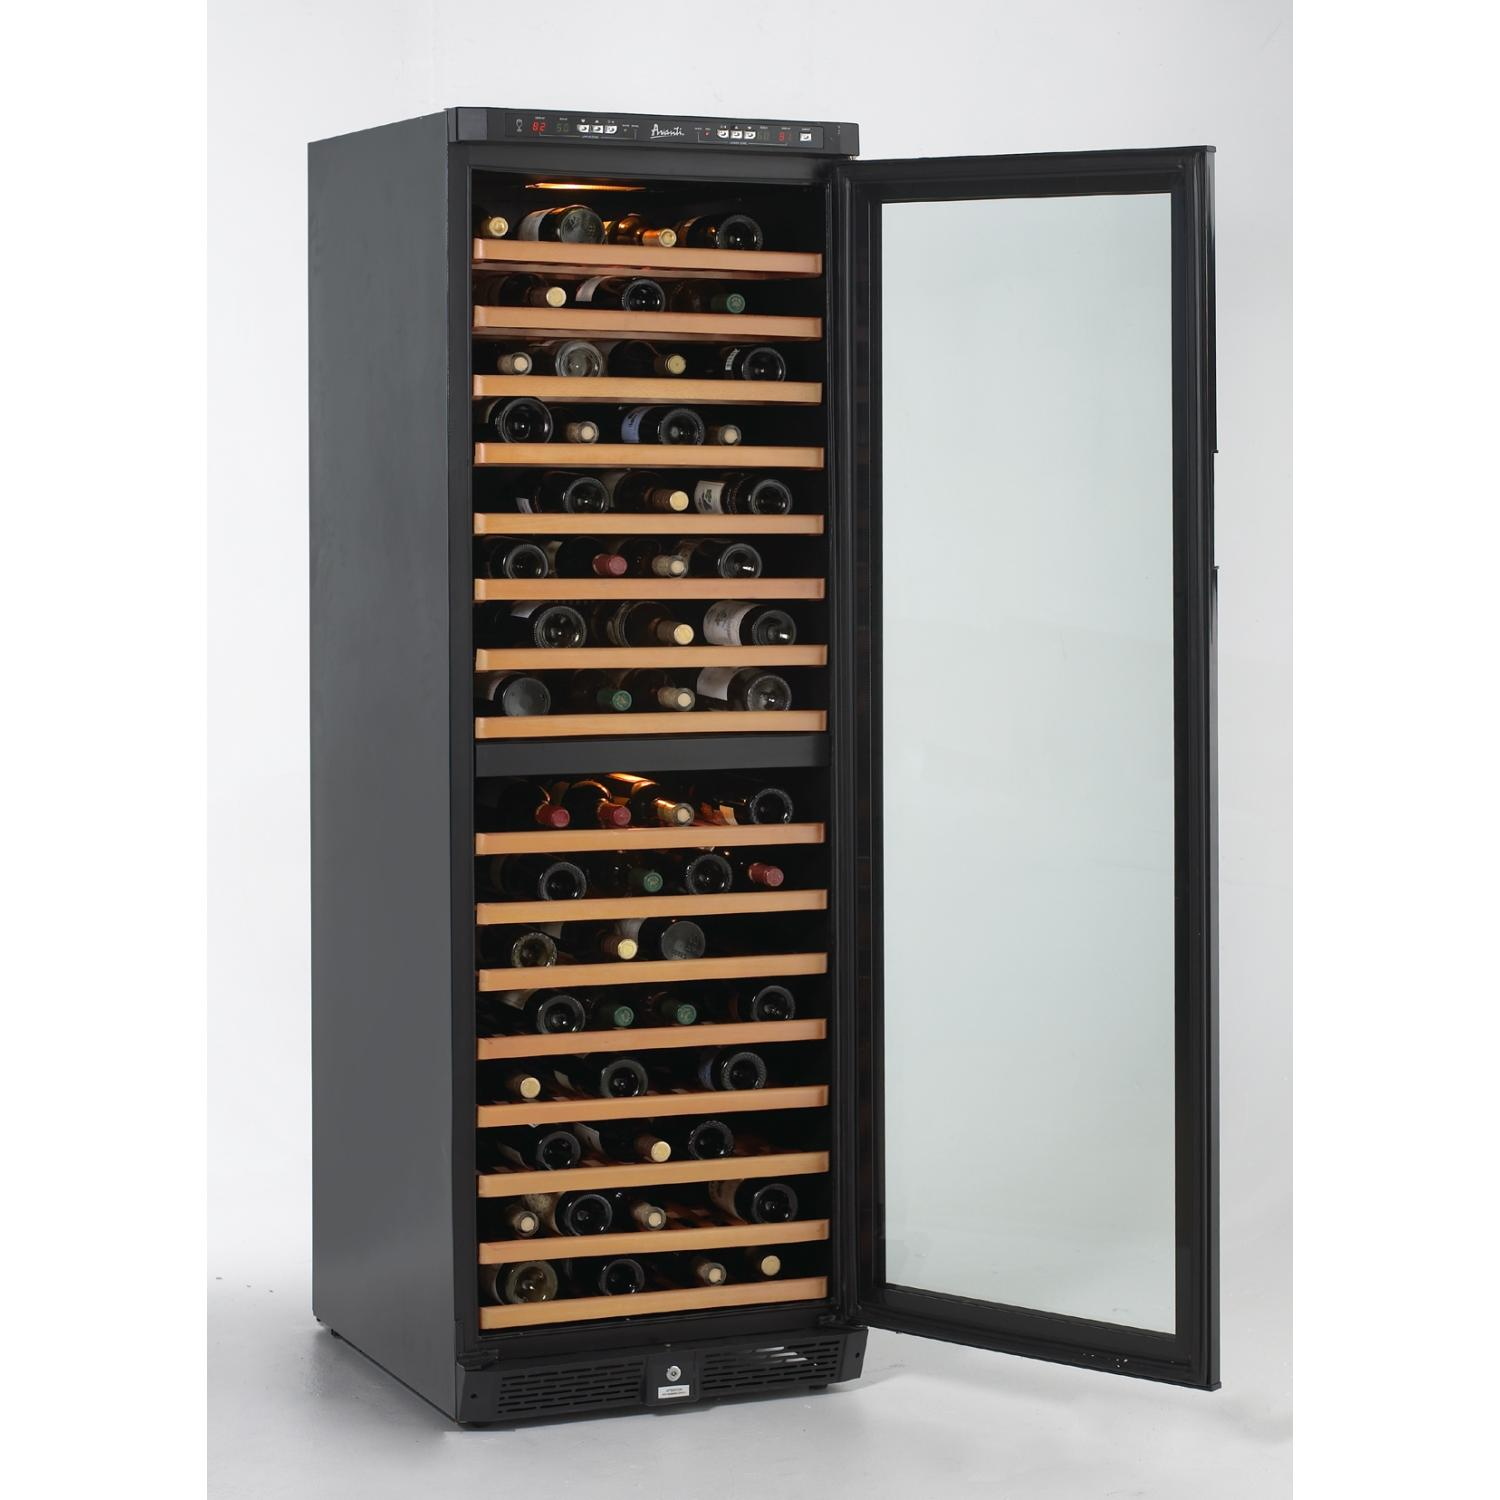 Avanti WCR683DZD2 149 Bottle Freestanding Dual Zone Wine Refrigerator - Glass Door / Black